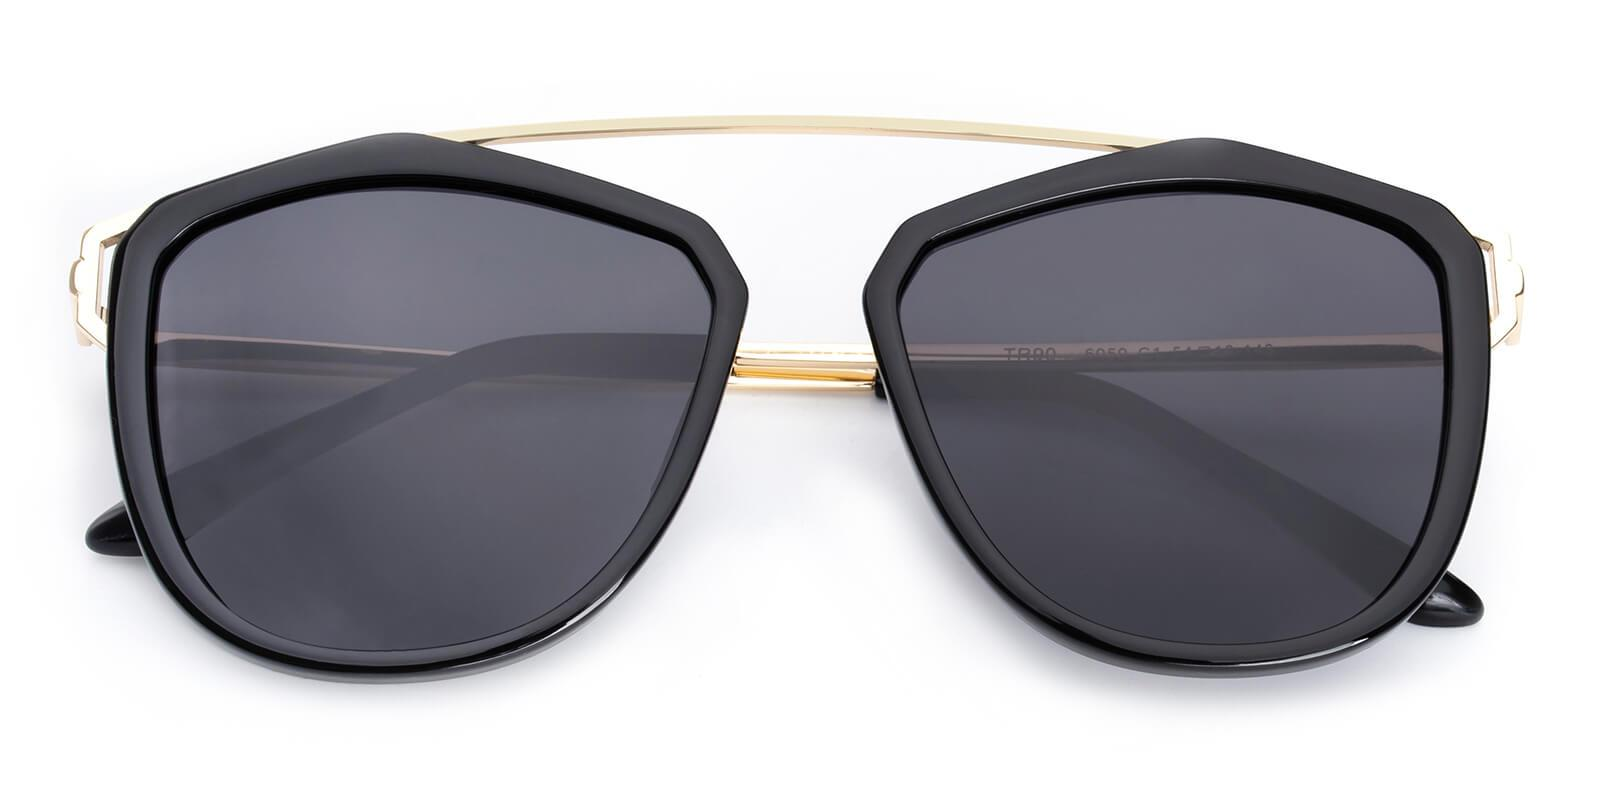 Phantom-Black-Aviator-Metal / Combination / TR-Sunglasses-detail